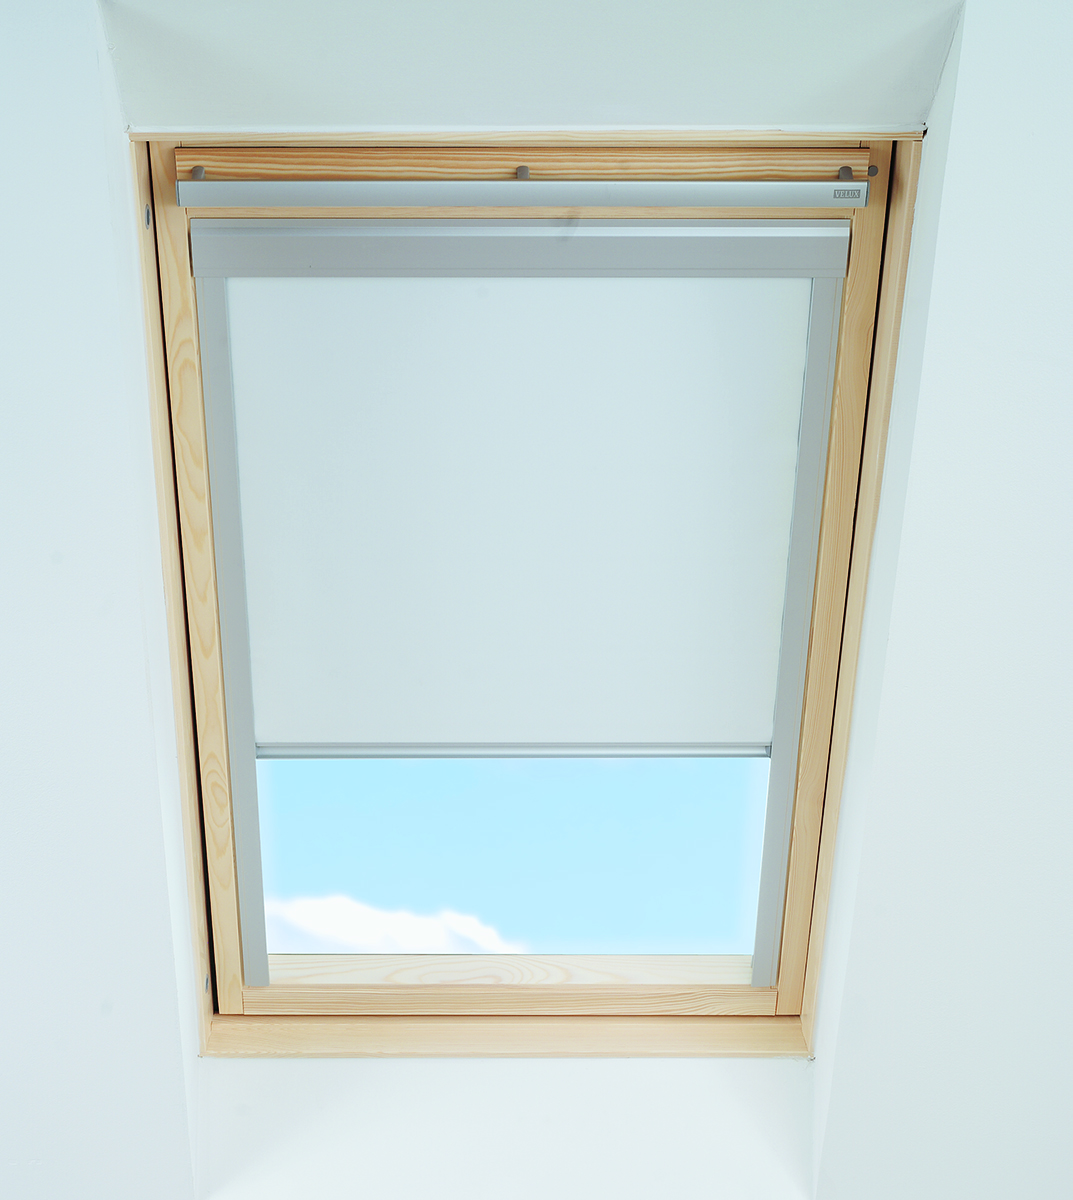 Blackout blinds for fakro roof window skylight white blue for Velux window shades